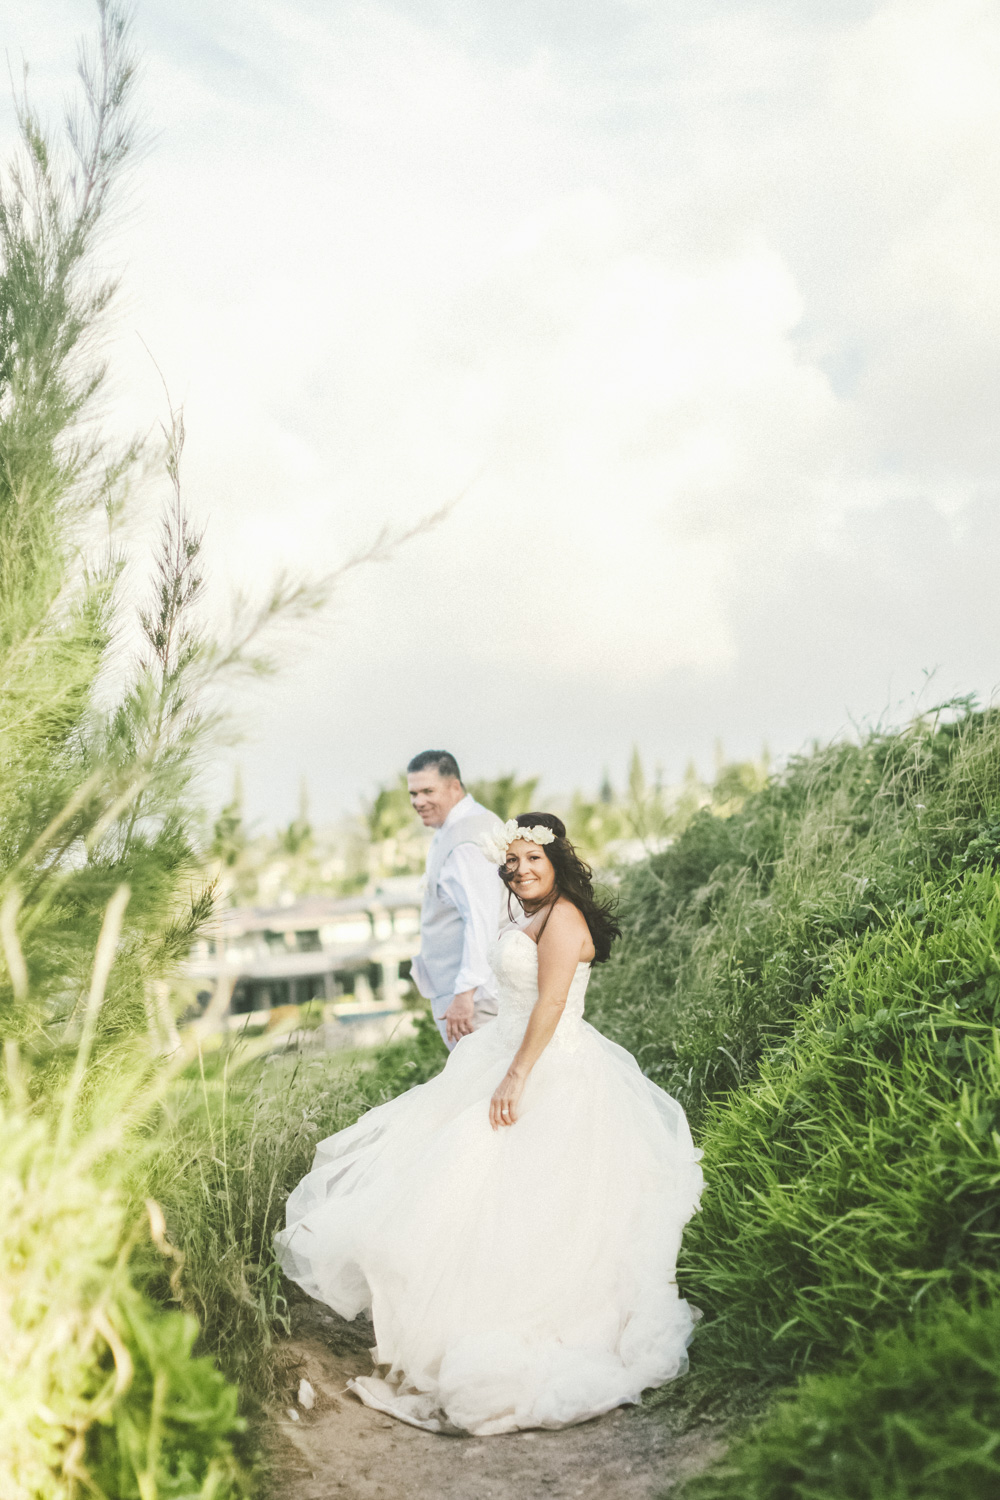 Maui hawaii photographer wedding inspiration_36.jpg